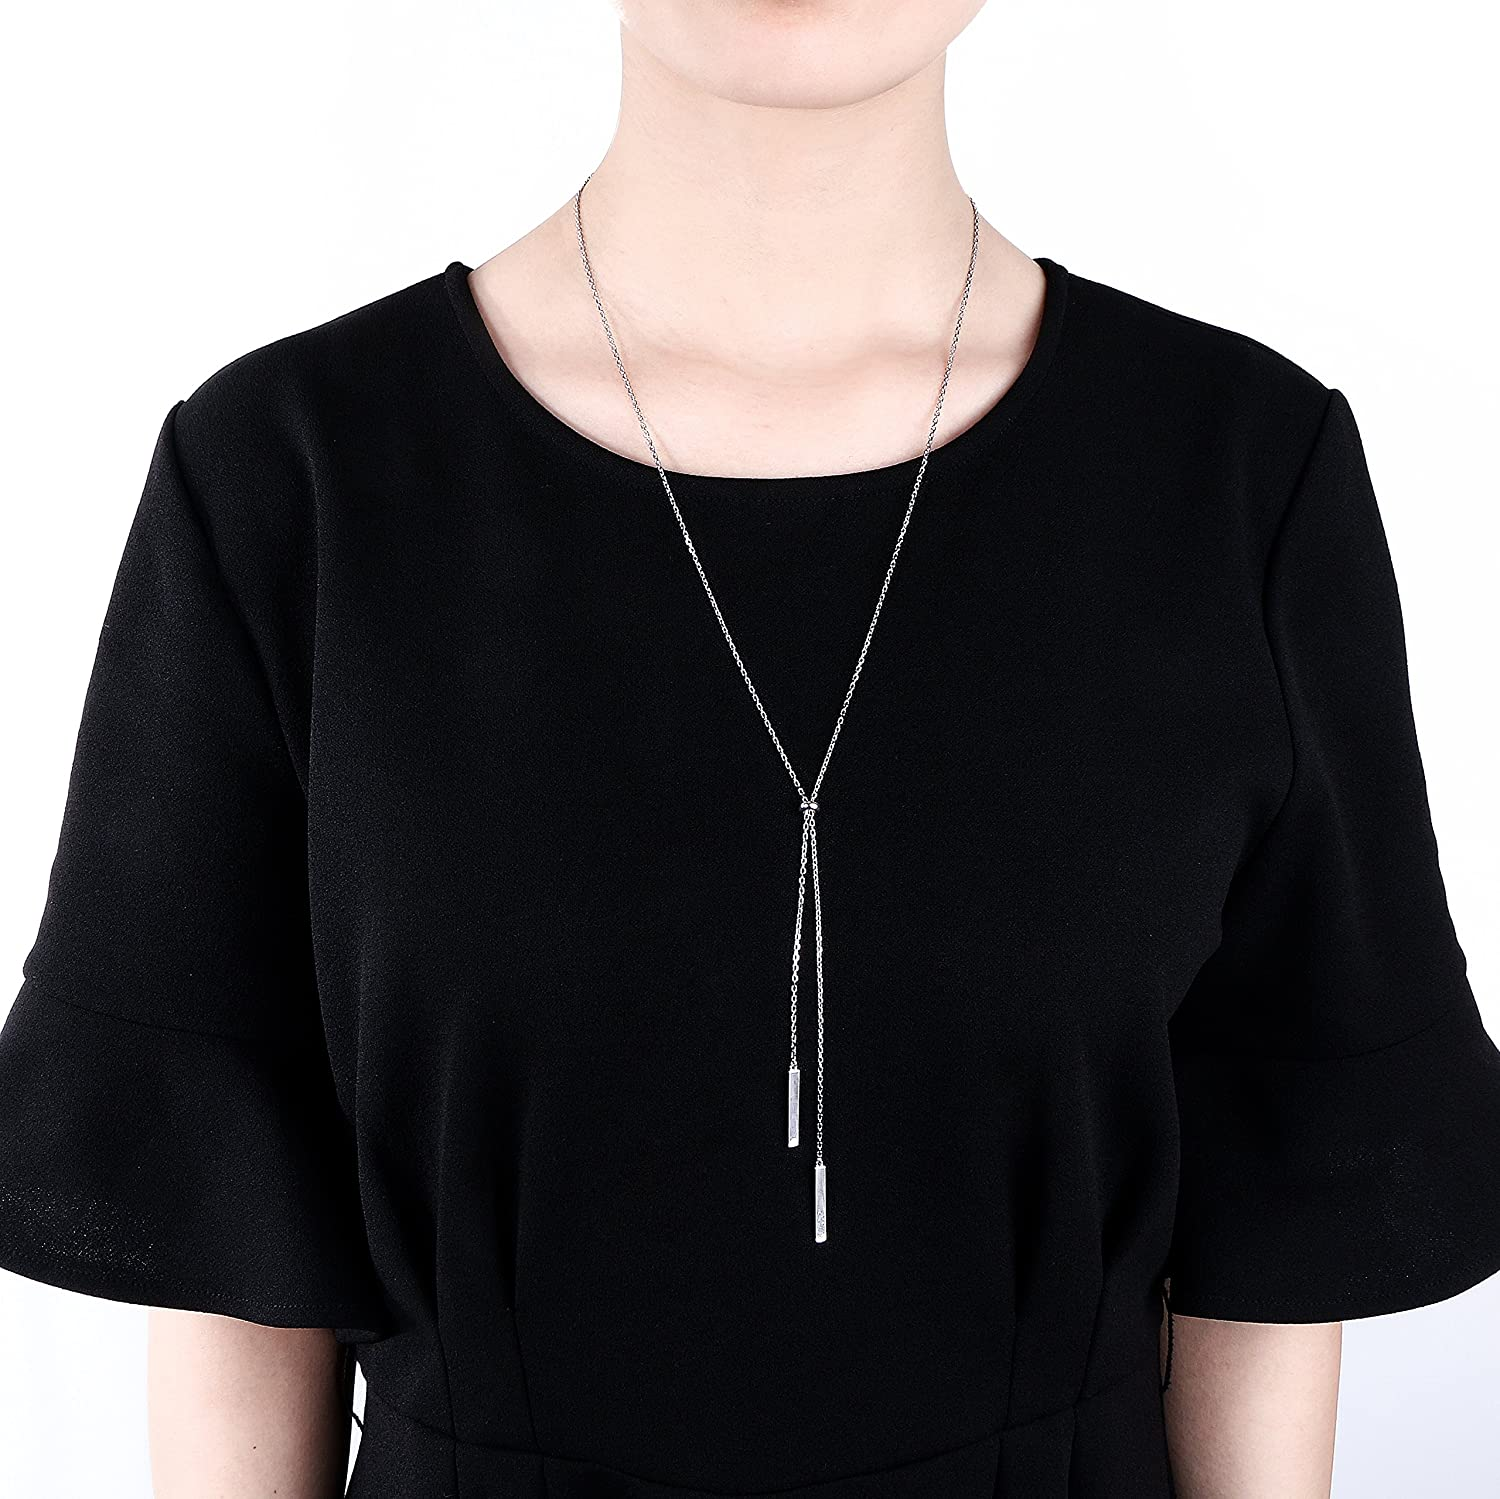 Sterling Silver Long Tassel Necklace Bar Y Lariat Long Chain Drop Adjustable Necklace Gift for Her 30 30 shaonan jewelry